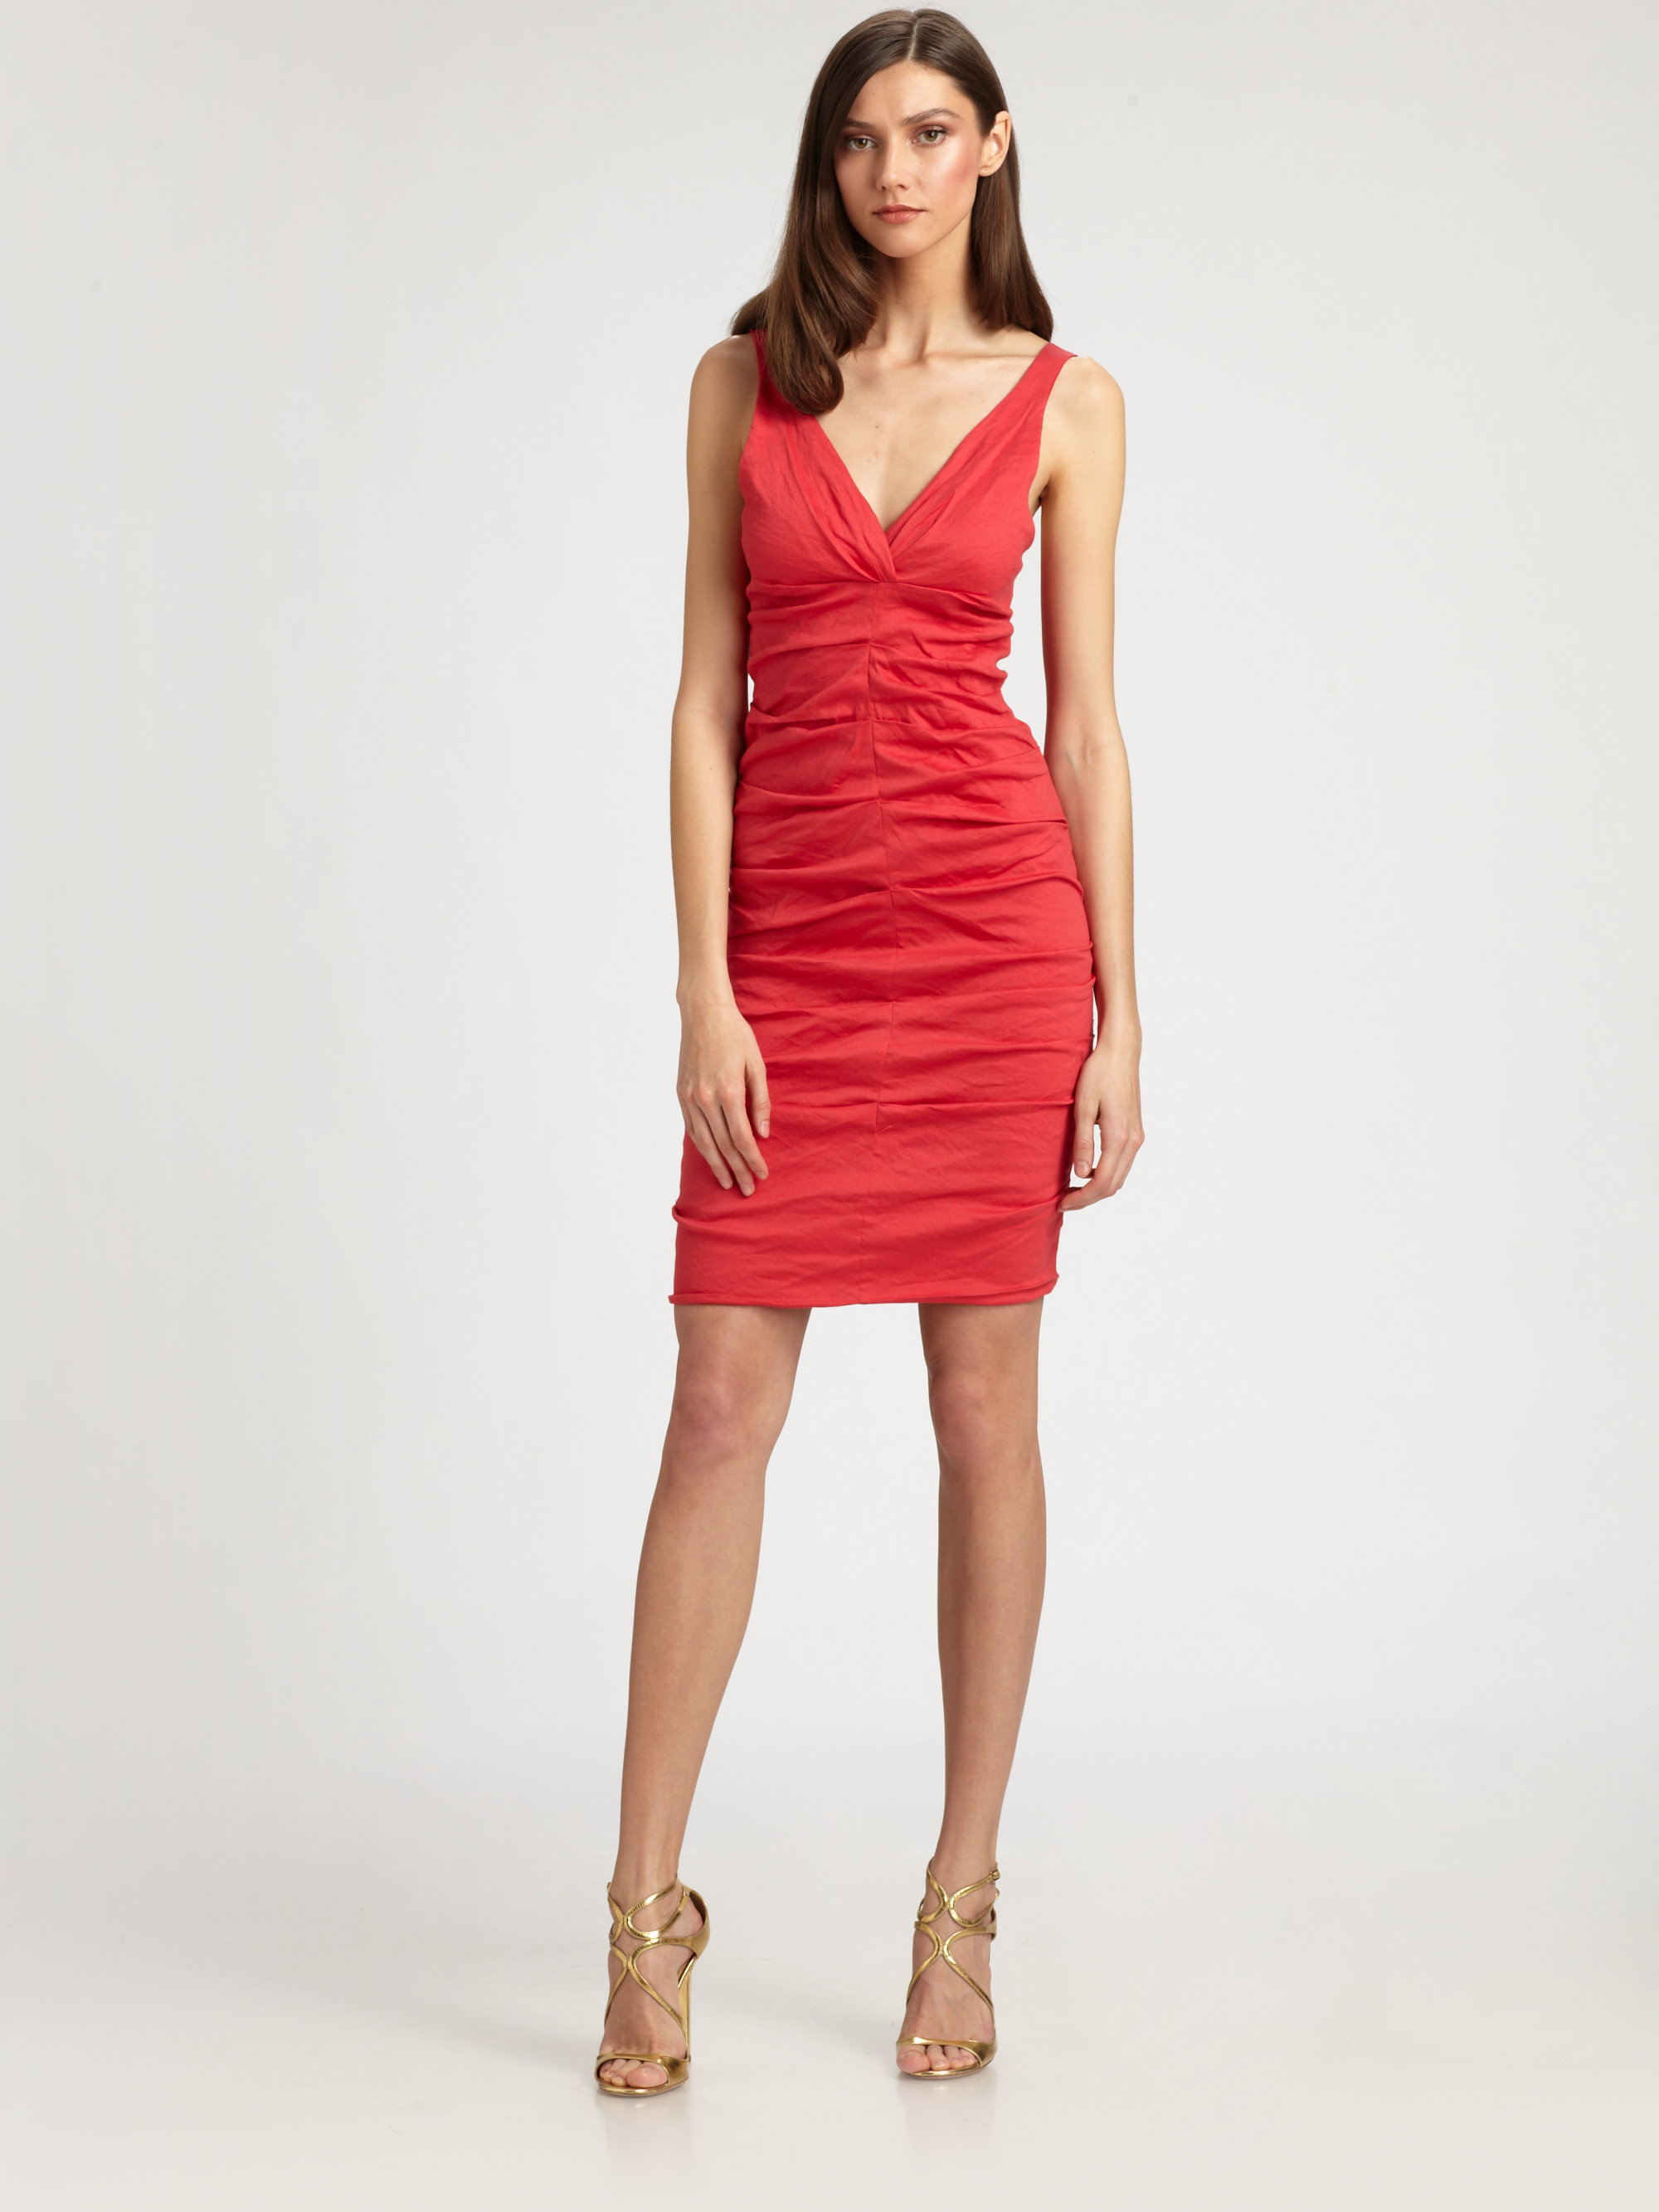 Nicole Miller Ruched Dress In Red Lyst